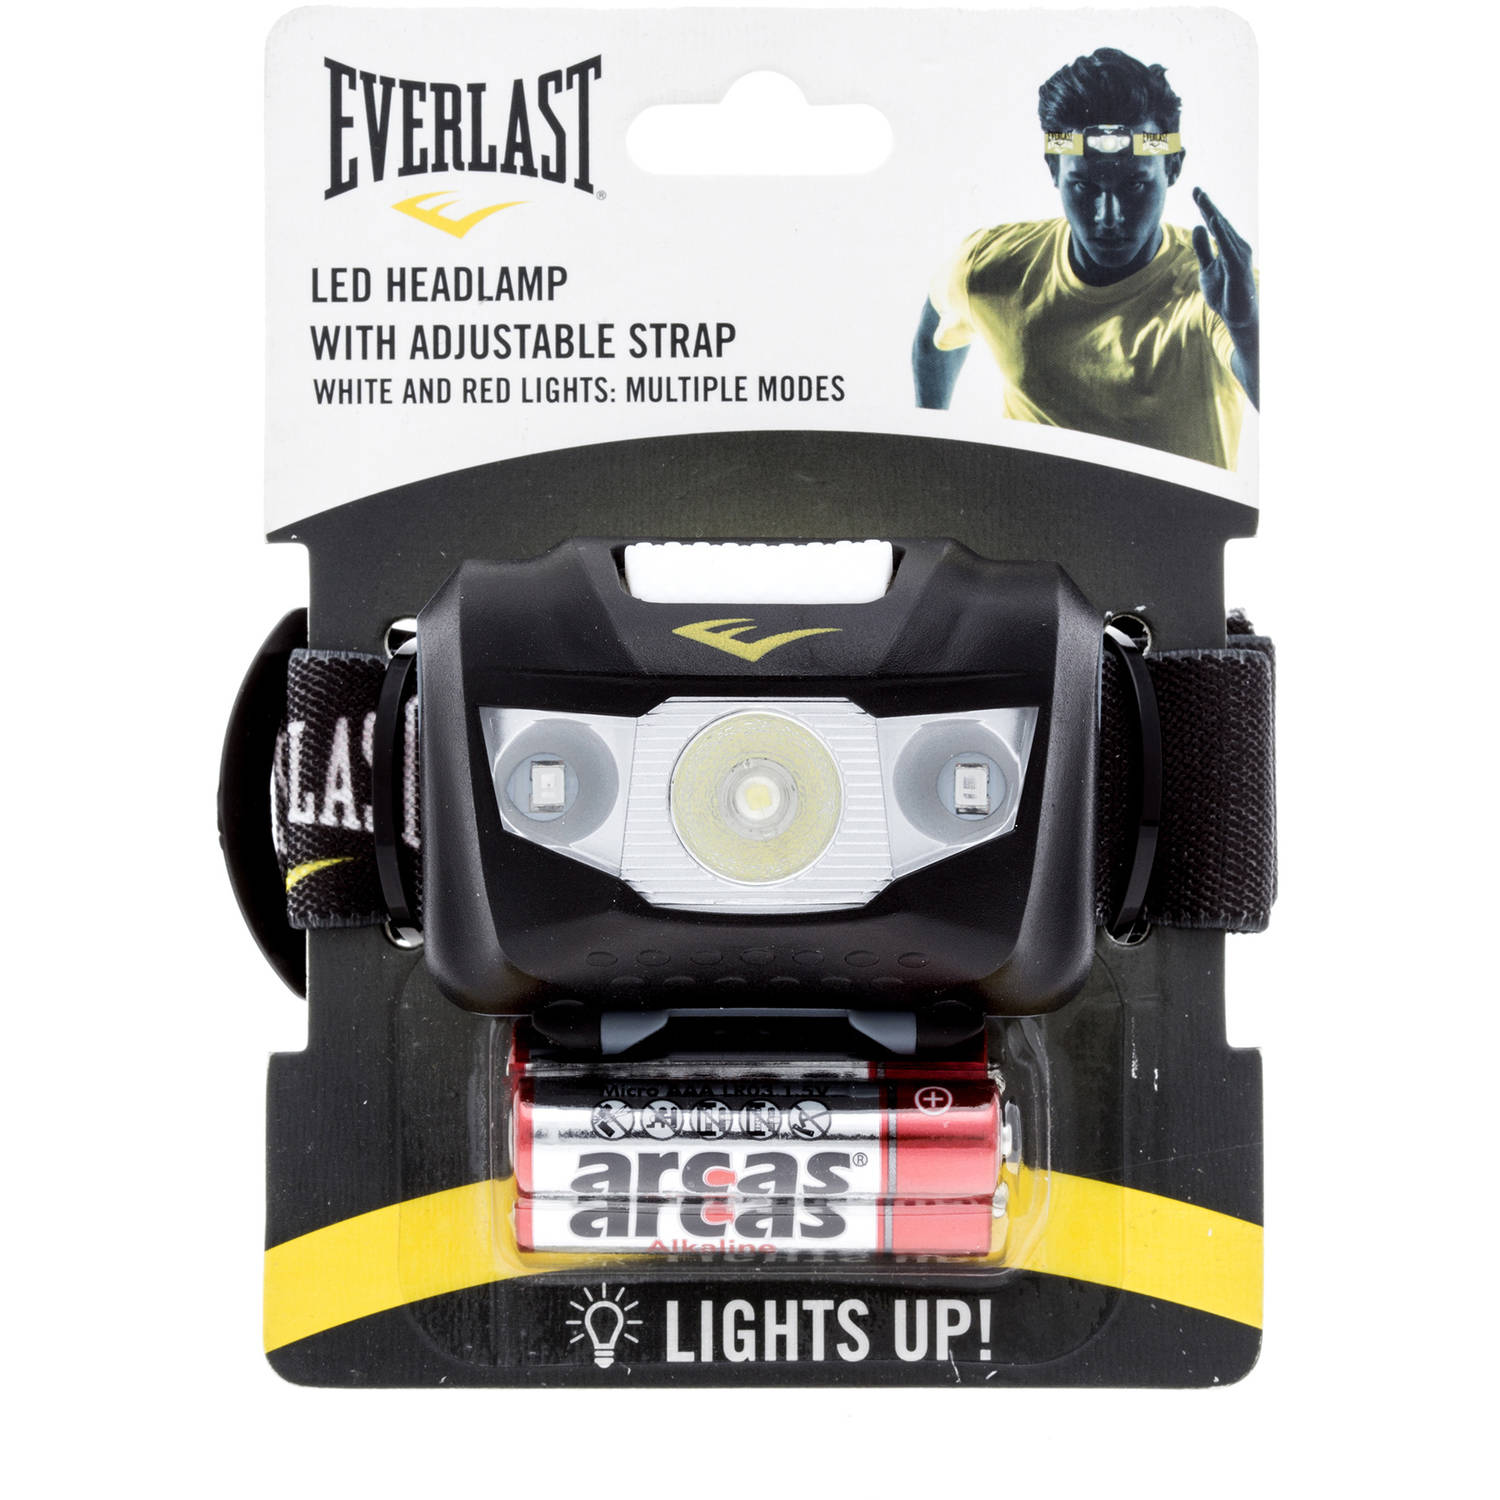 Everlast Multi-Flash Mode LED Adjustable Headlamp, Multiple Colors